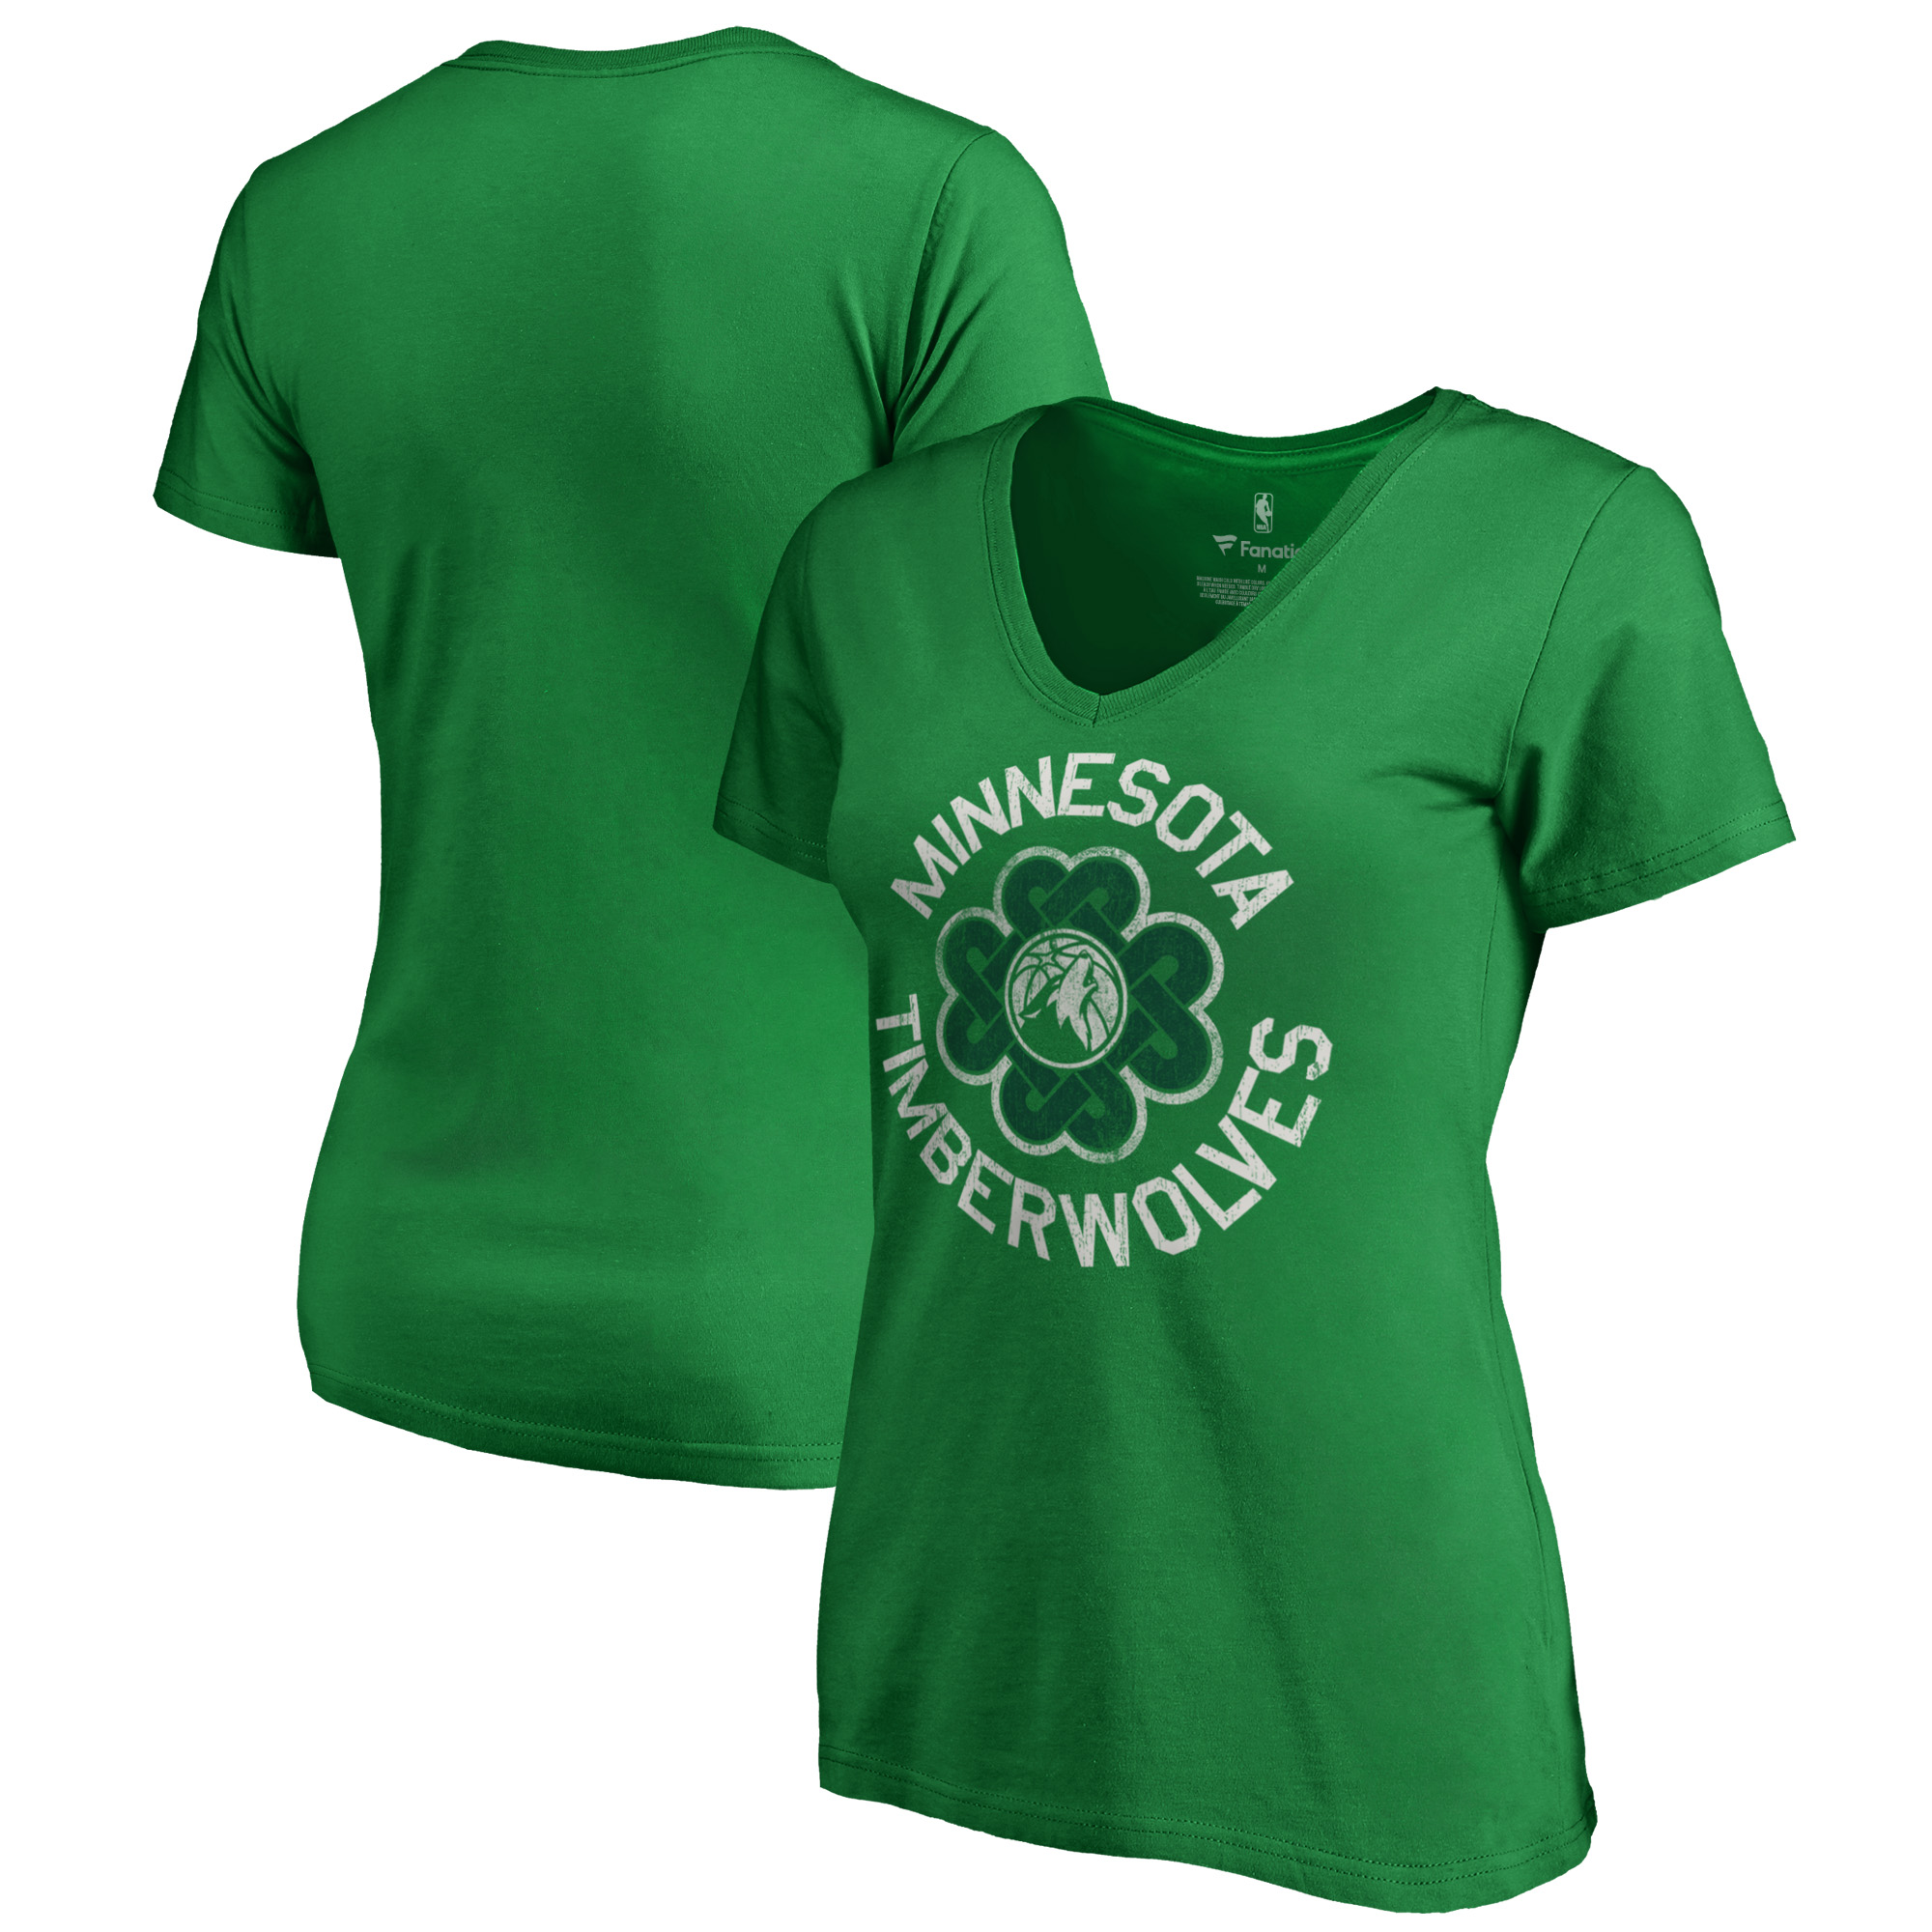 Minnesota Timberwolves Fanatics Branded Women's Plus Size St. Patrick's Day Luck Tradition V-Neck T-Shirt - Kelly Green